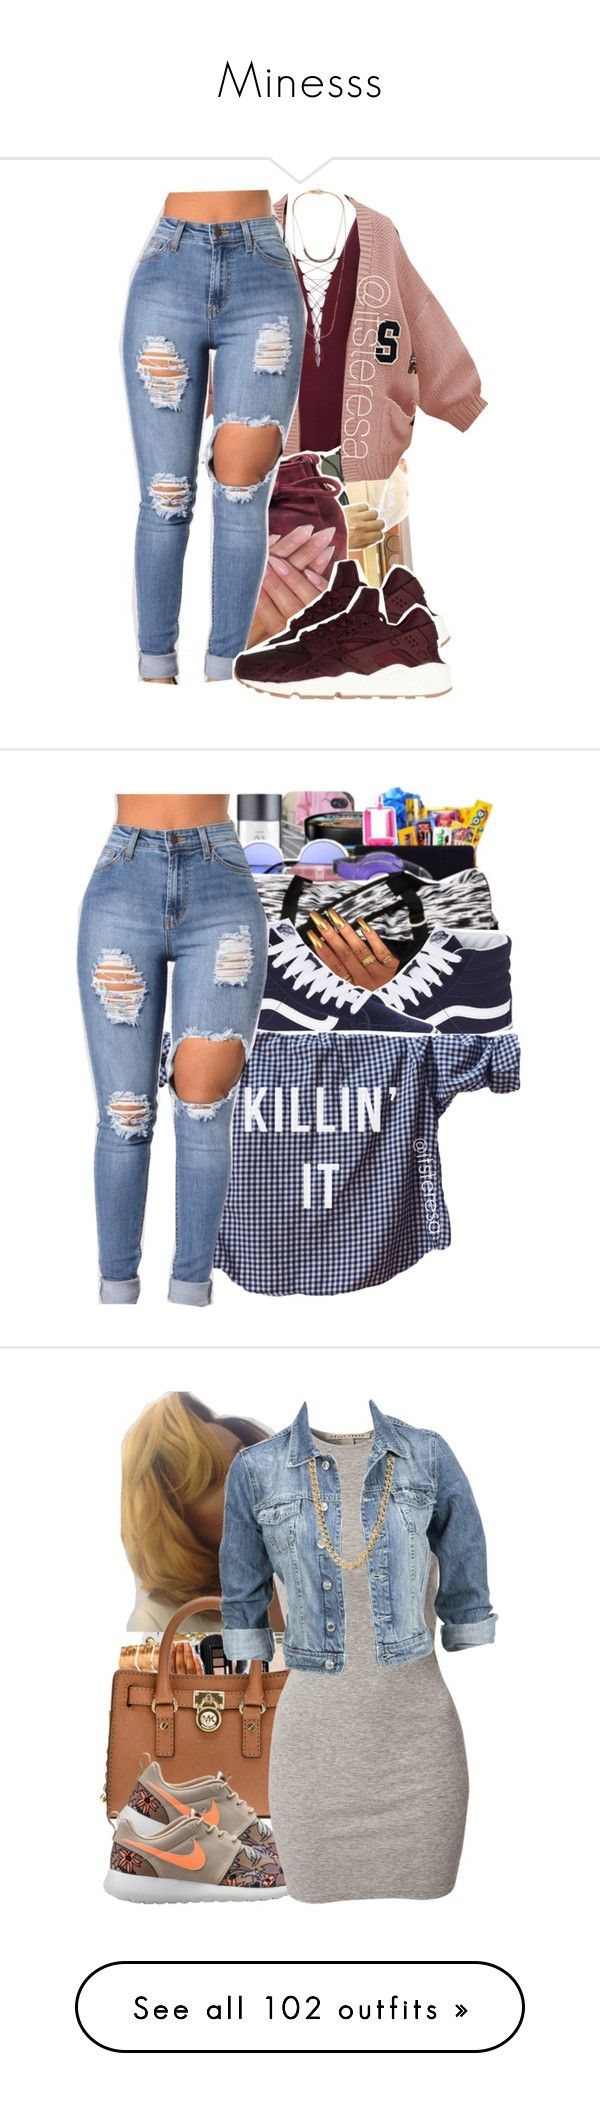 """""""Minesss"""" by ashantisowell ❤ liked on Polyvore featuring T By Alexander Wang, WithChic, INC International Concepts, NIKE, Isabel Marant, Vans, Humör, MICHAEL Michael Kors, NLY Trend and Modström"""